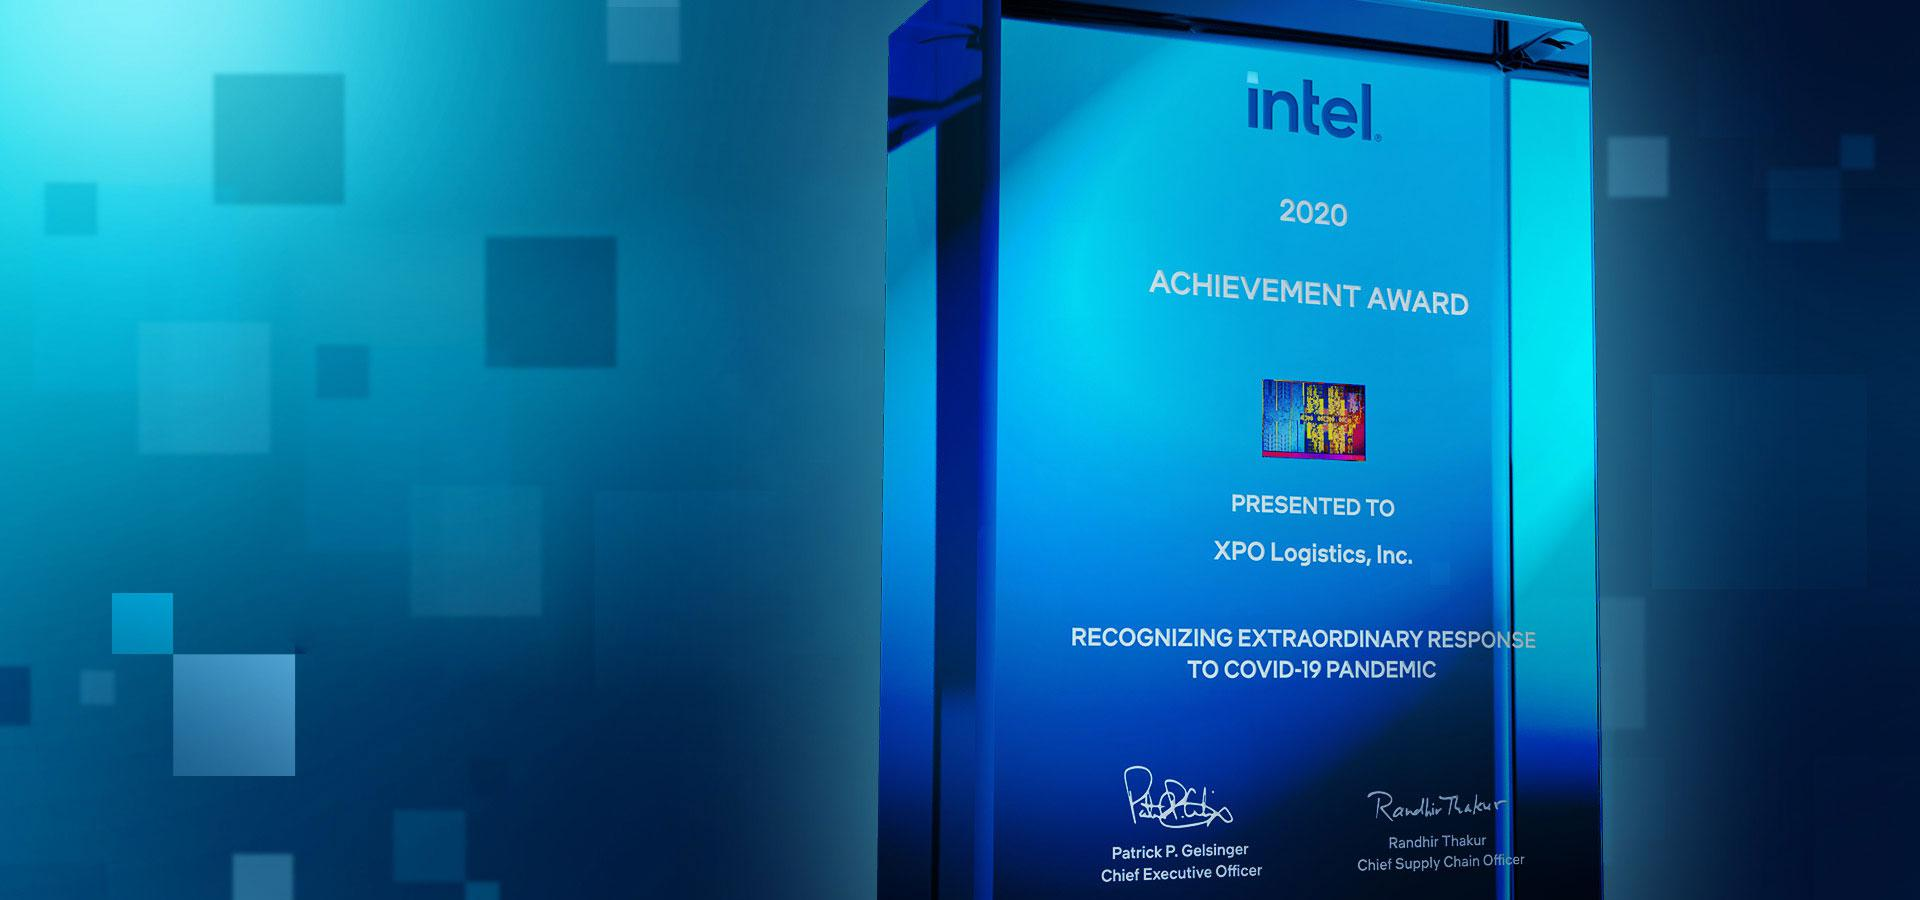 XPO receives Intel Award